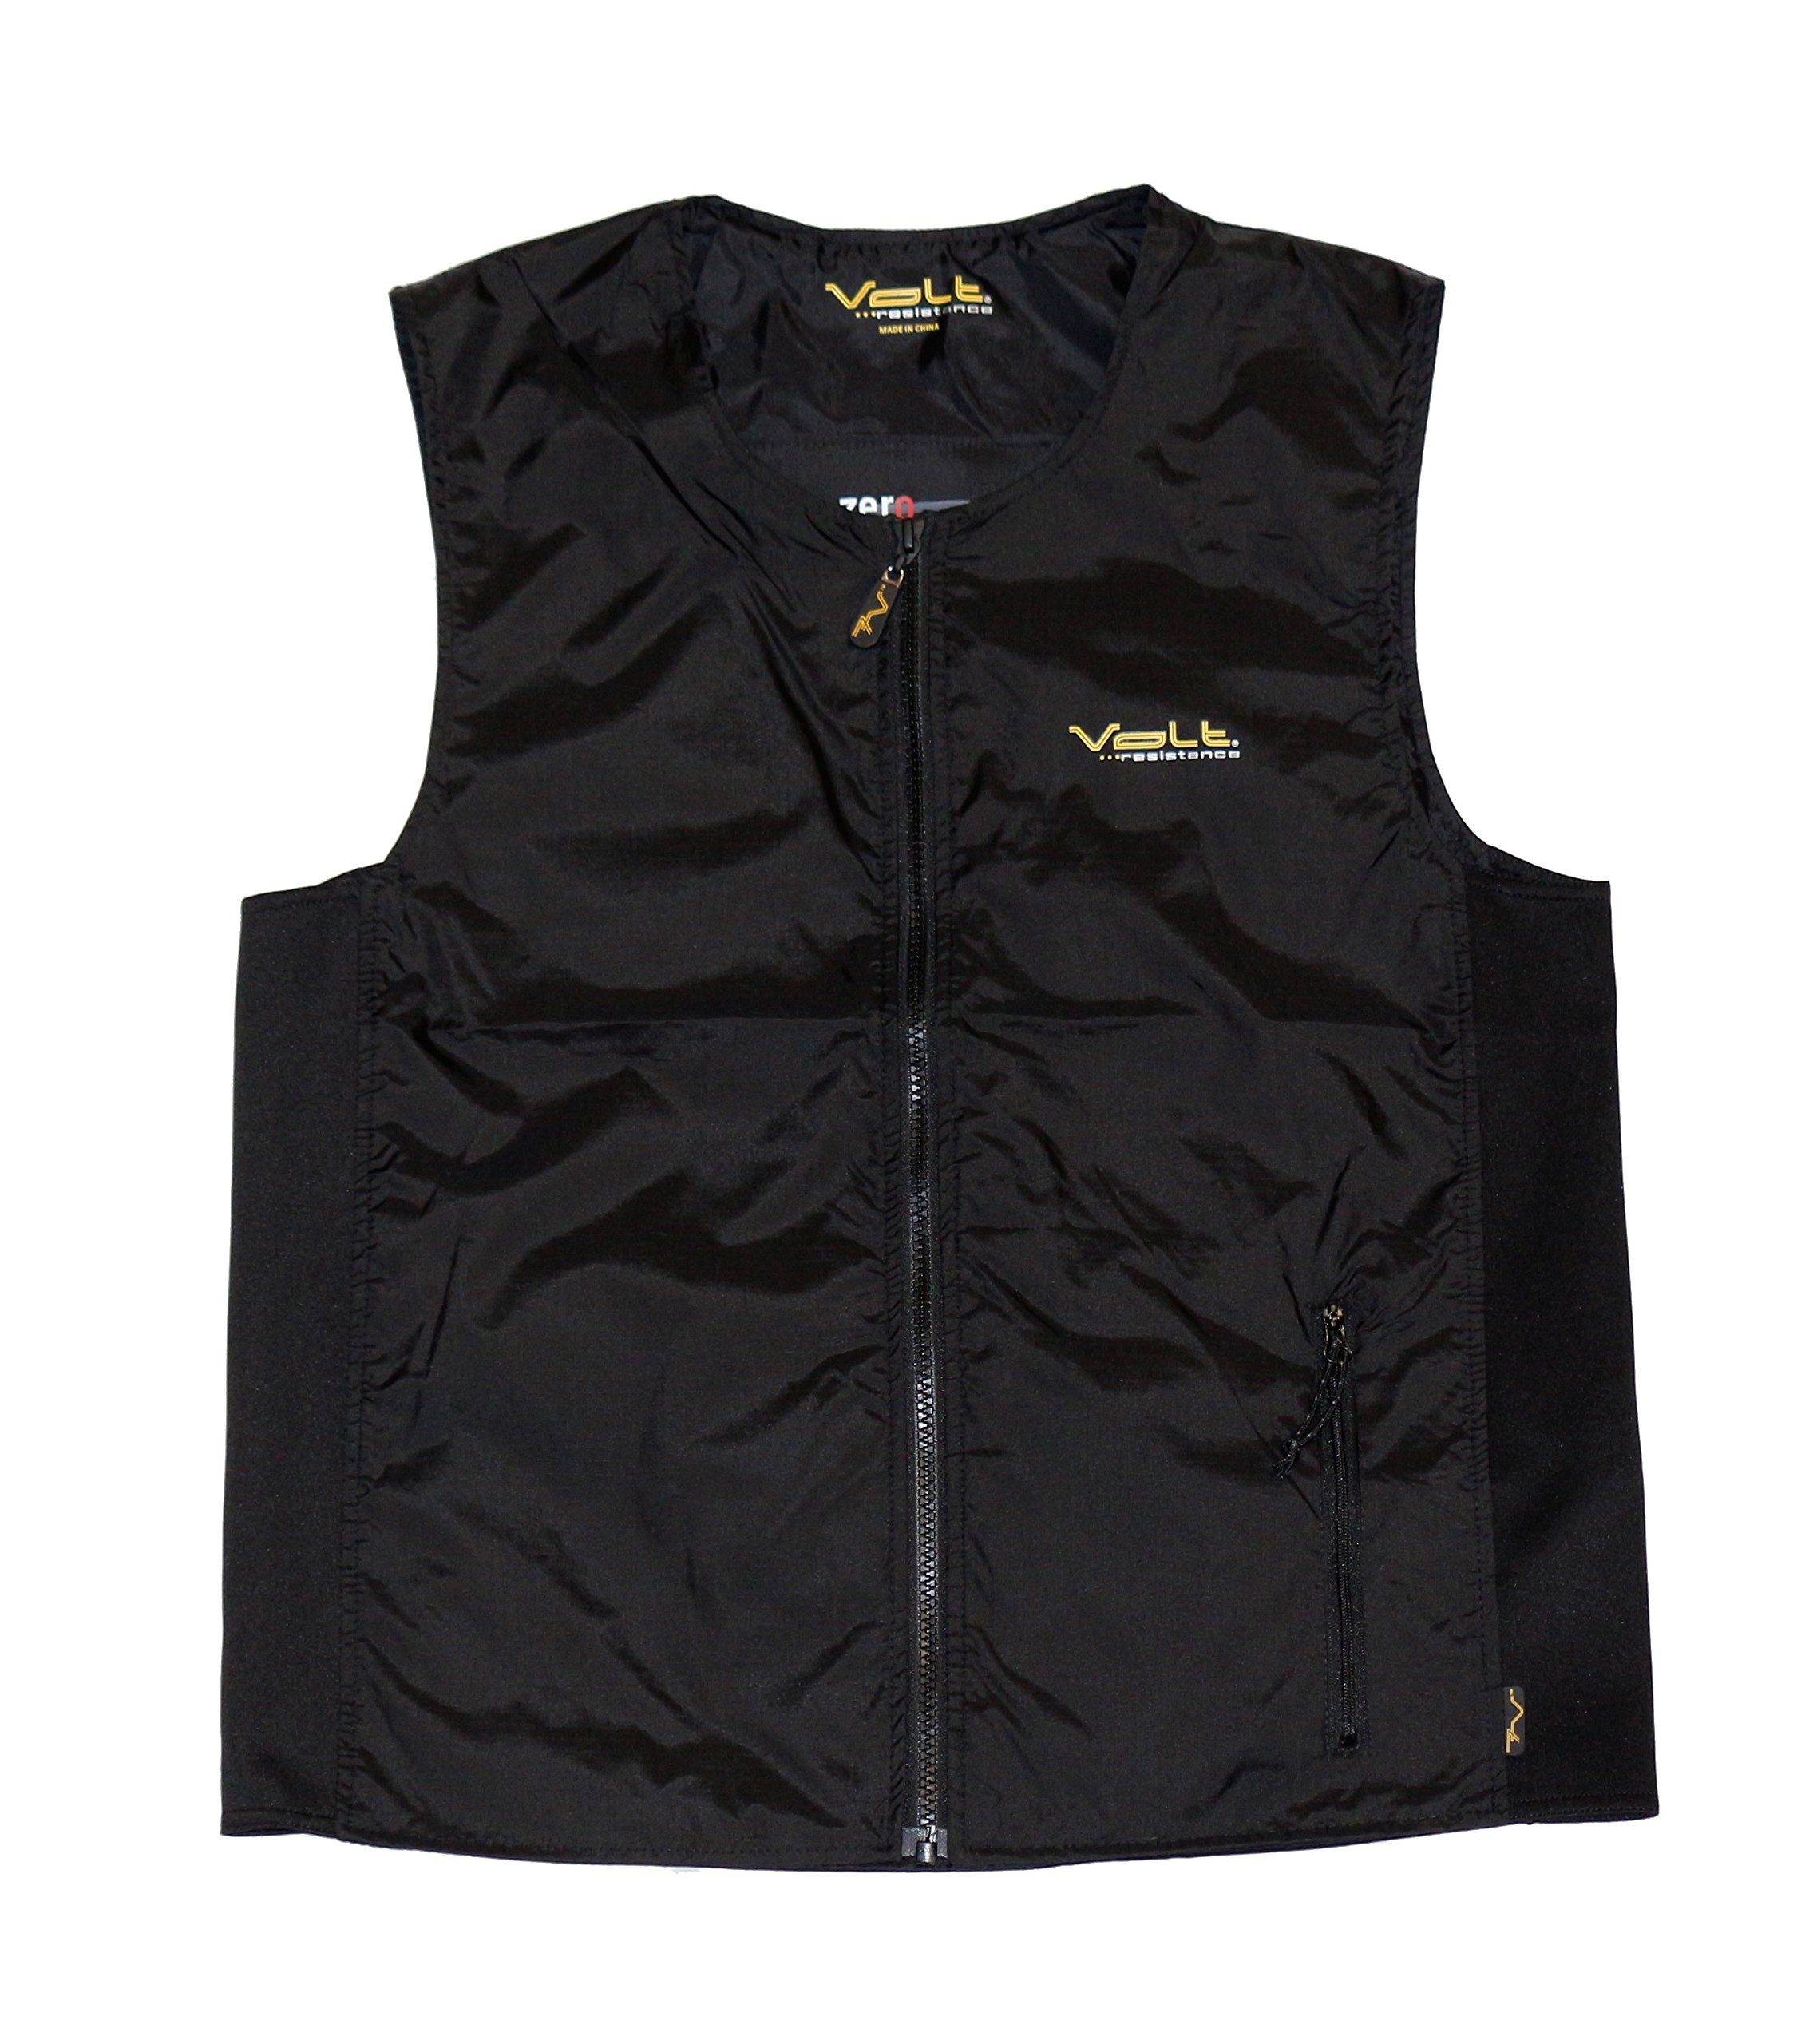 Heated Vest Liner by Volt - The Rechargeable Battery Powered Heat is Located in The Chest and Back, optimizing Heat Transfer. by Volt Resistance (Image #1)